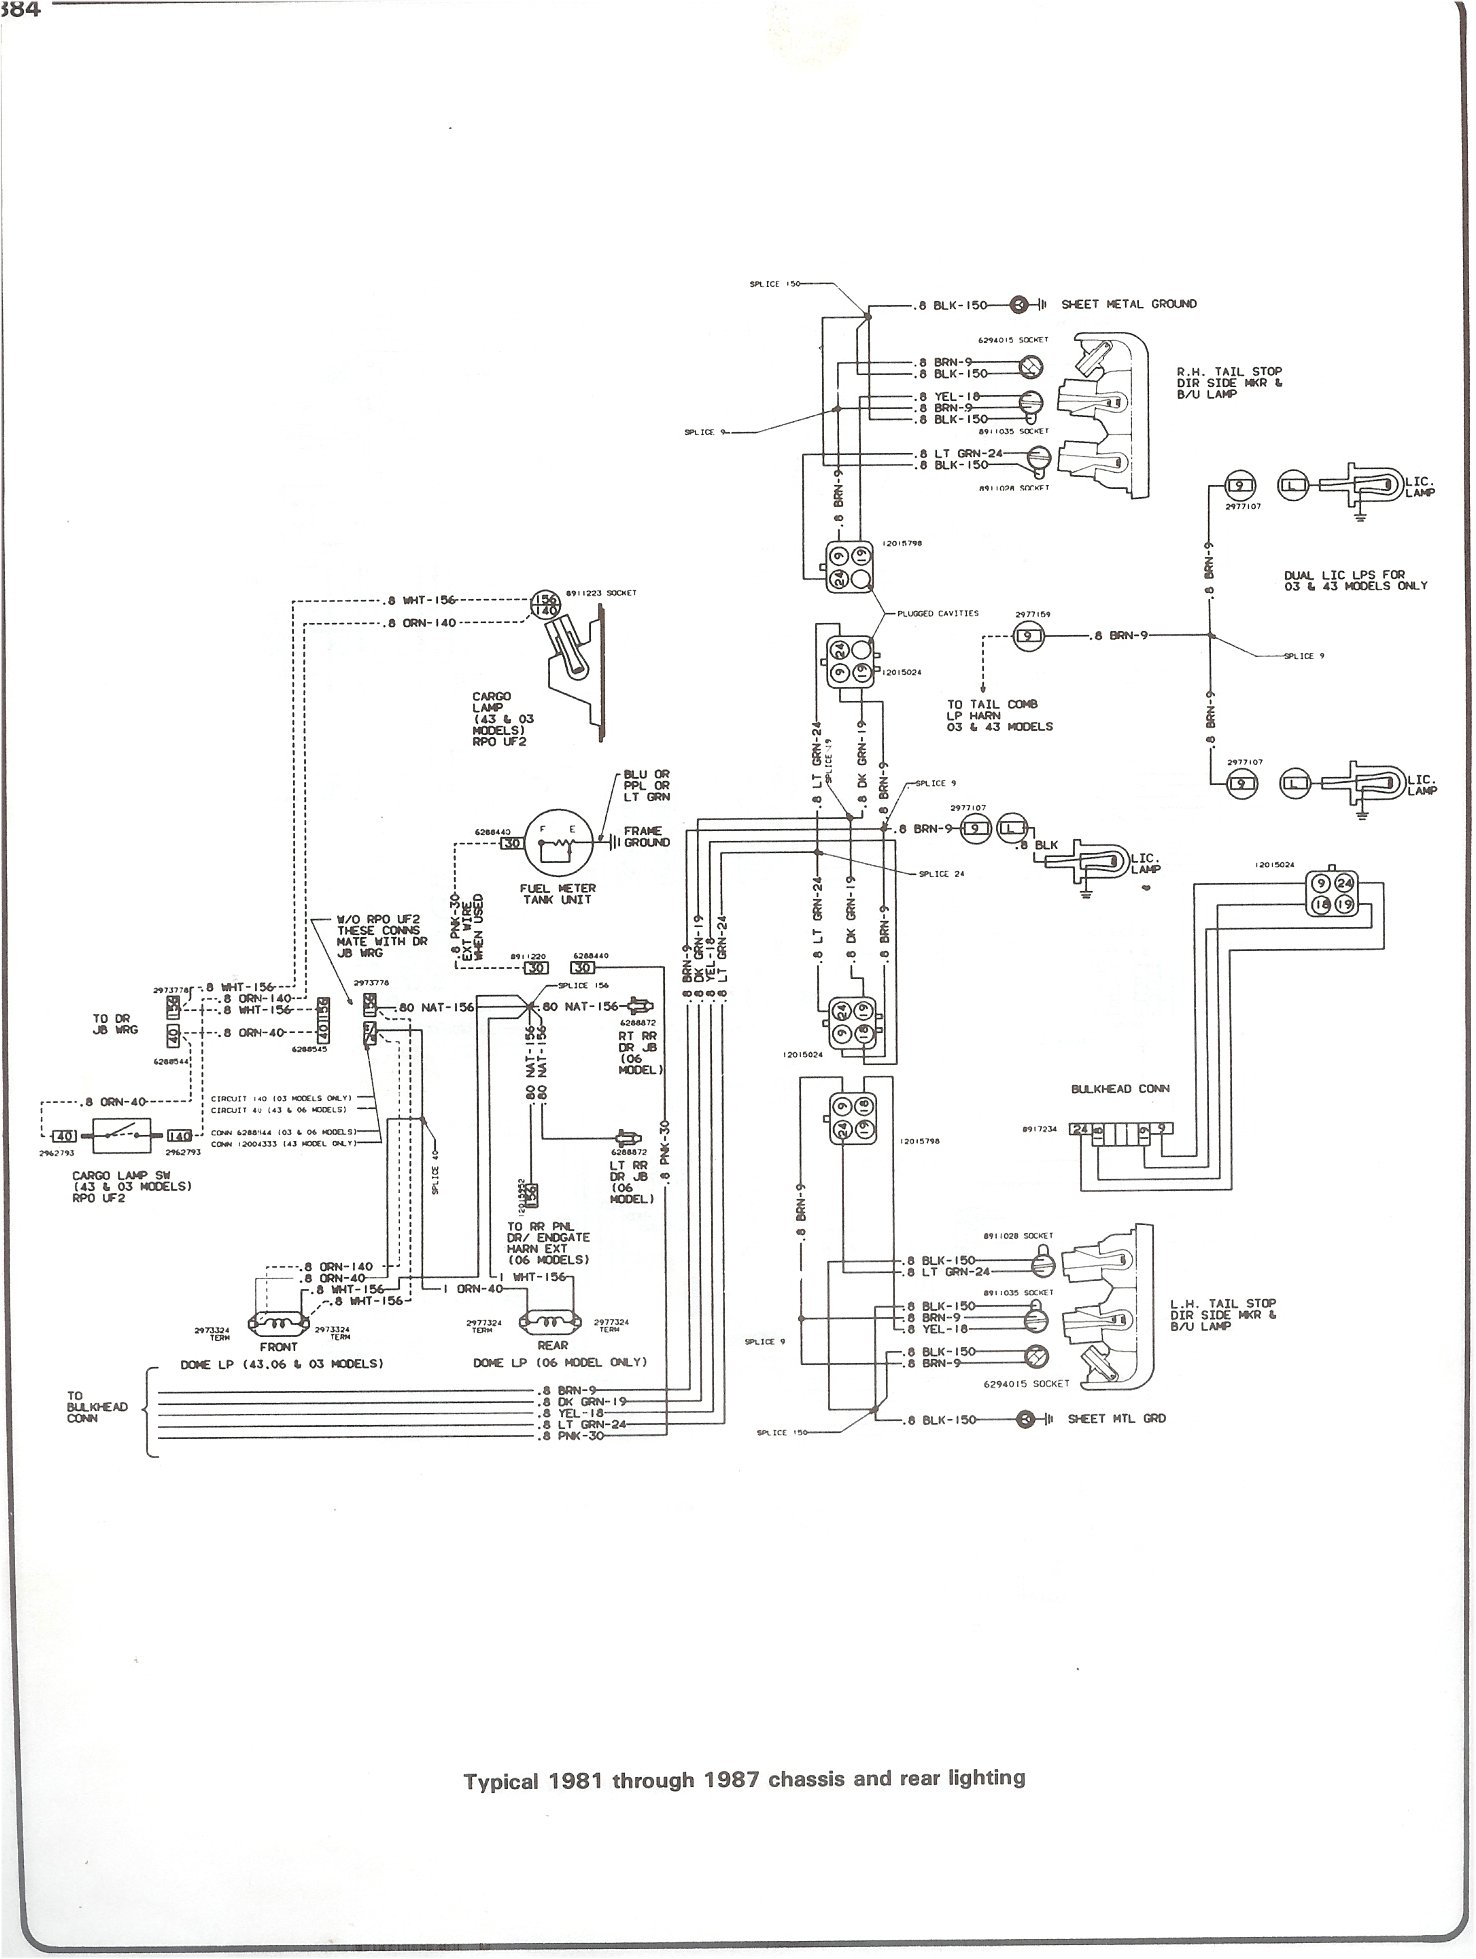 81 87_chass_rr_light complete 73 87 wiring diagrams 1975 c10 wiring diagram at gsmx.co